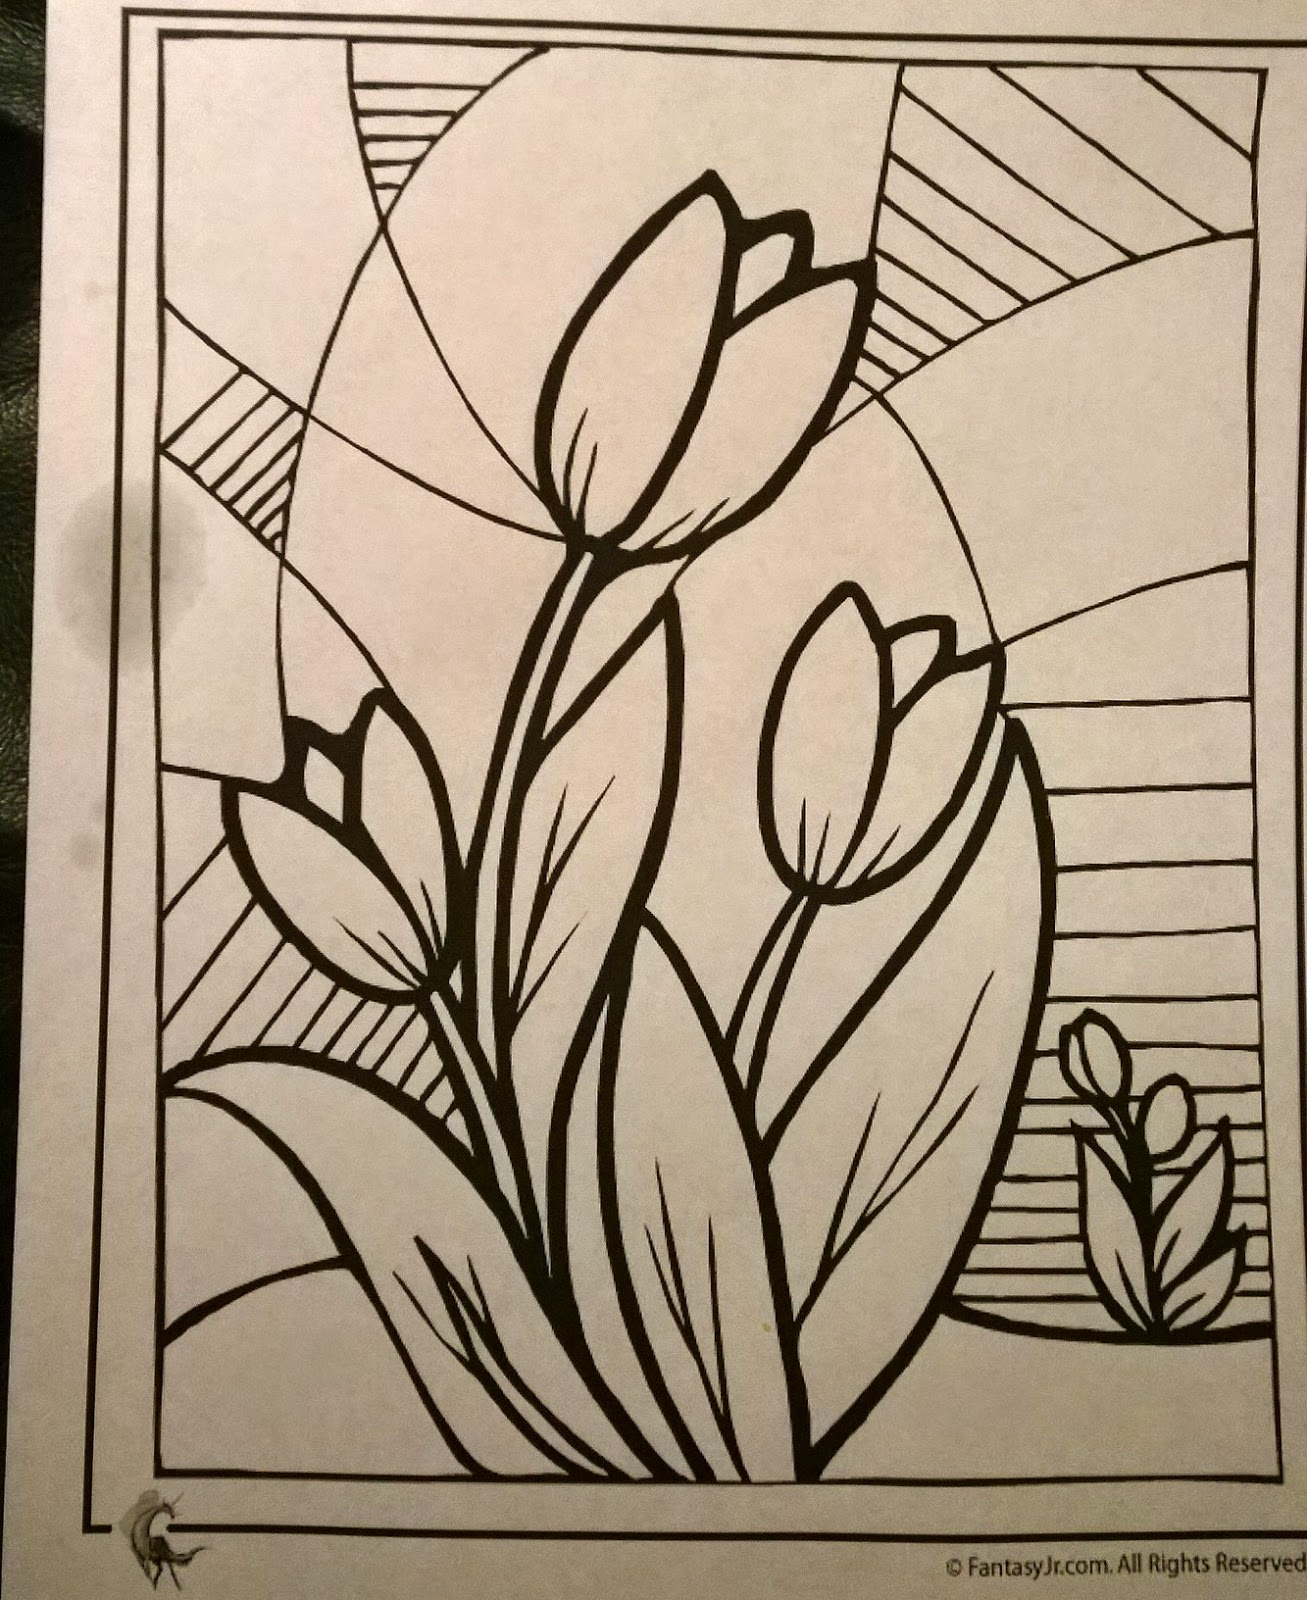 Color zentangles online - First I Found A Drawing I Liked Online And Printed It This Drawing Of Tulips And A Stained Glass Background Had A Zentangle Feel To It